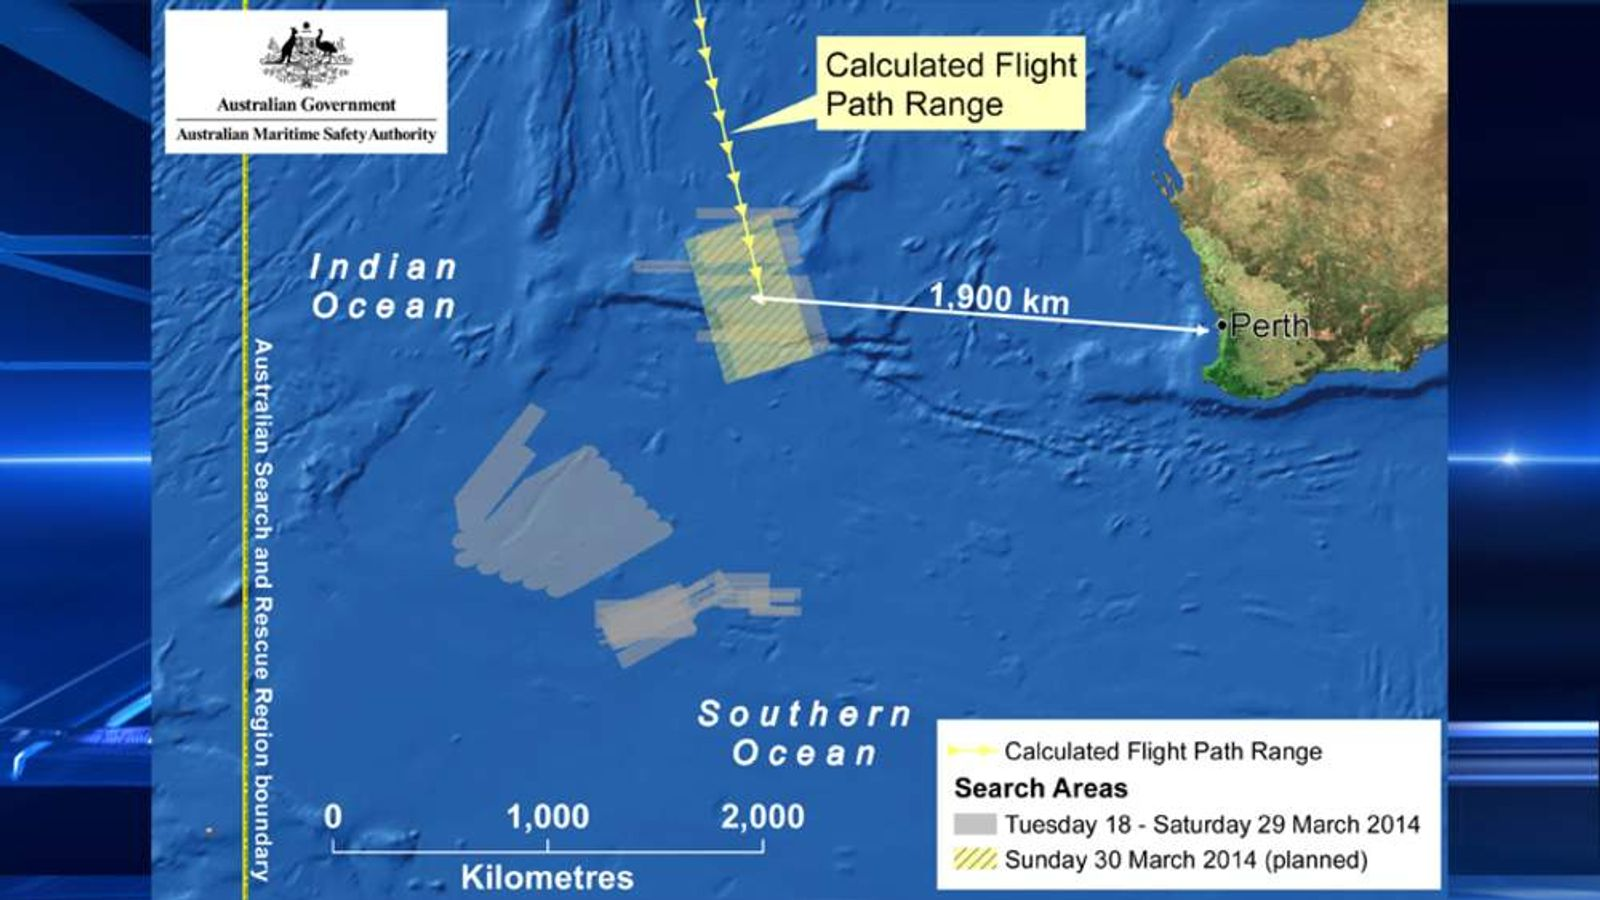 The planned search area for missing Malaysia Airlines flight MH370 on March 30